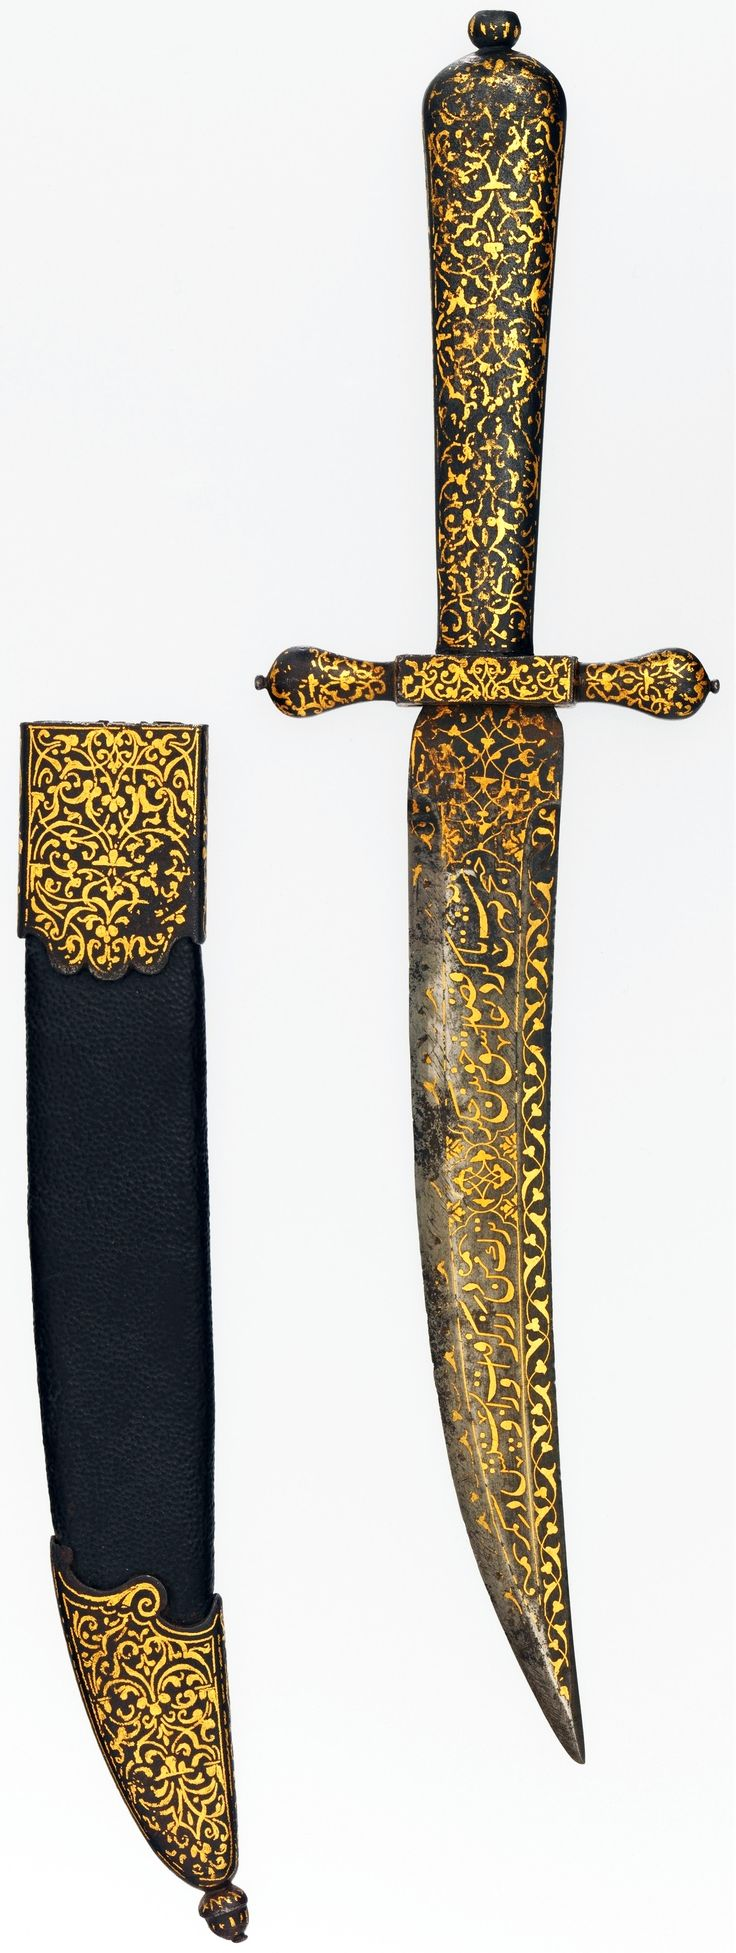 """Dagger, Ottoman blade (mid-16th c), European hilt and scabbard (1600–1650?), steel damascened with gold, L. 10 3/8 in. (26.34 cm), Met Museum. Indo-Persian blades were valued in Europe, they were exported and mounted with European hilts. This blade has been fitted with a hilt and sheath damascened with gold arabesques of Middle Eastern inspiration. Inscribed:""""It is a dagger since it attempted [to take] the life of the unfaithful lover. My Turk took it [wrapped in gold] and bound it to his…"""